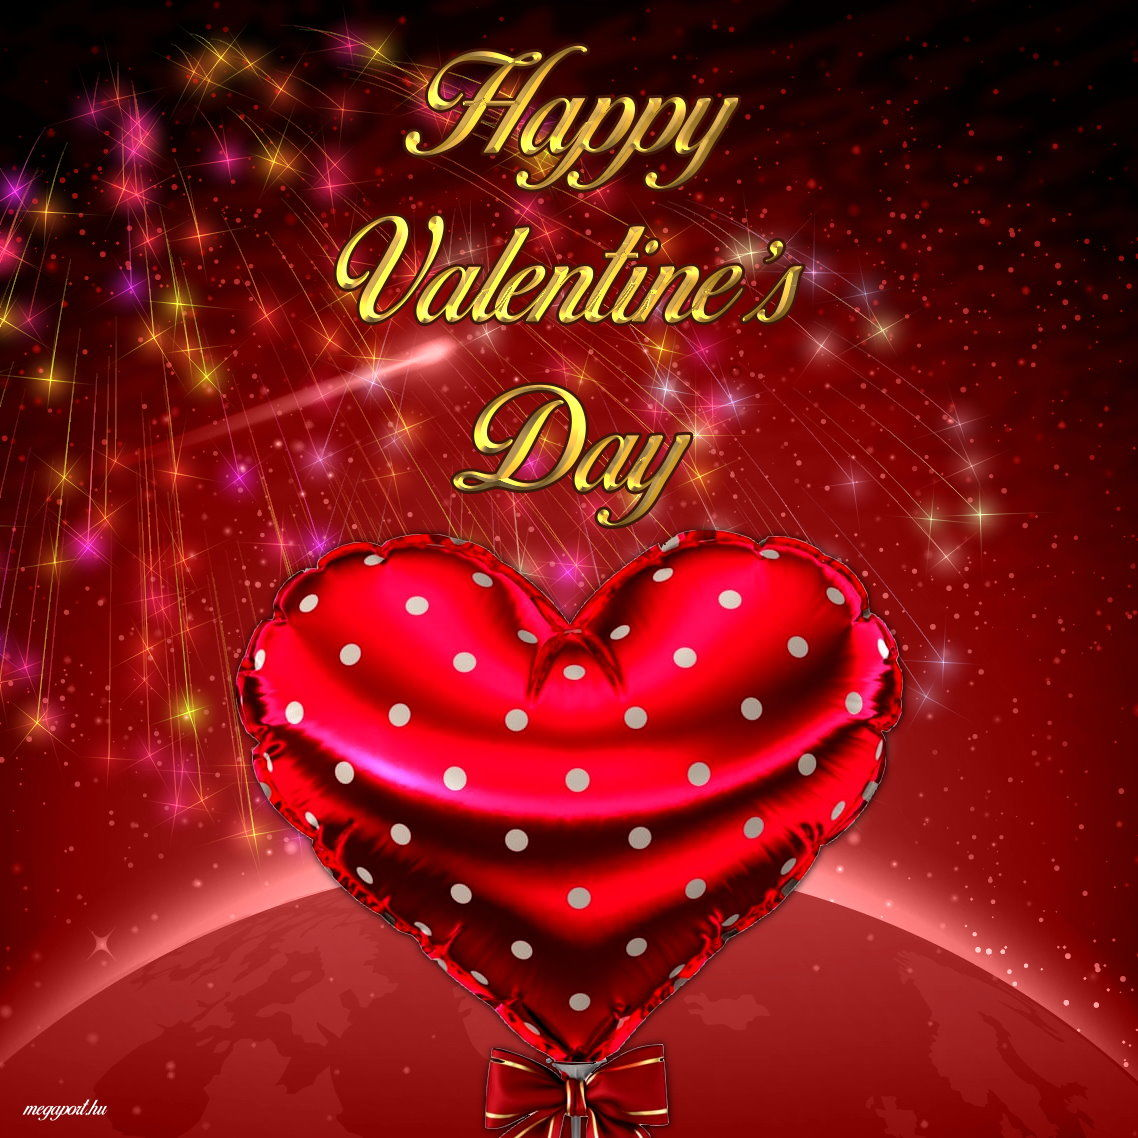 Sparkling Heart Happy Valentines Day Pictures, Photos, and